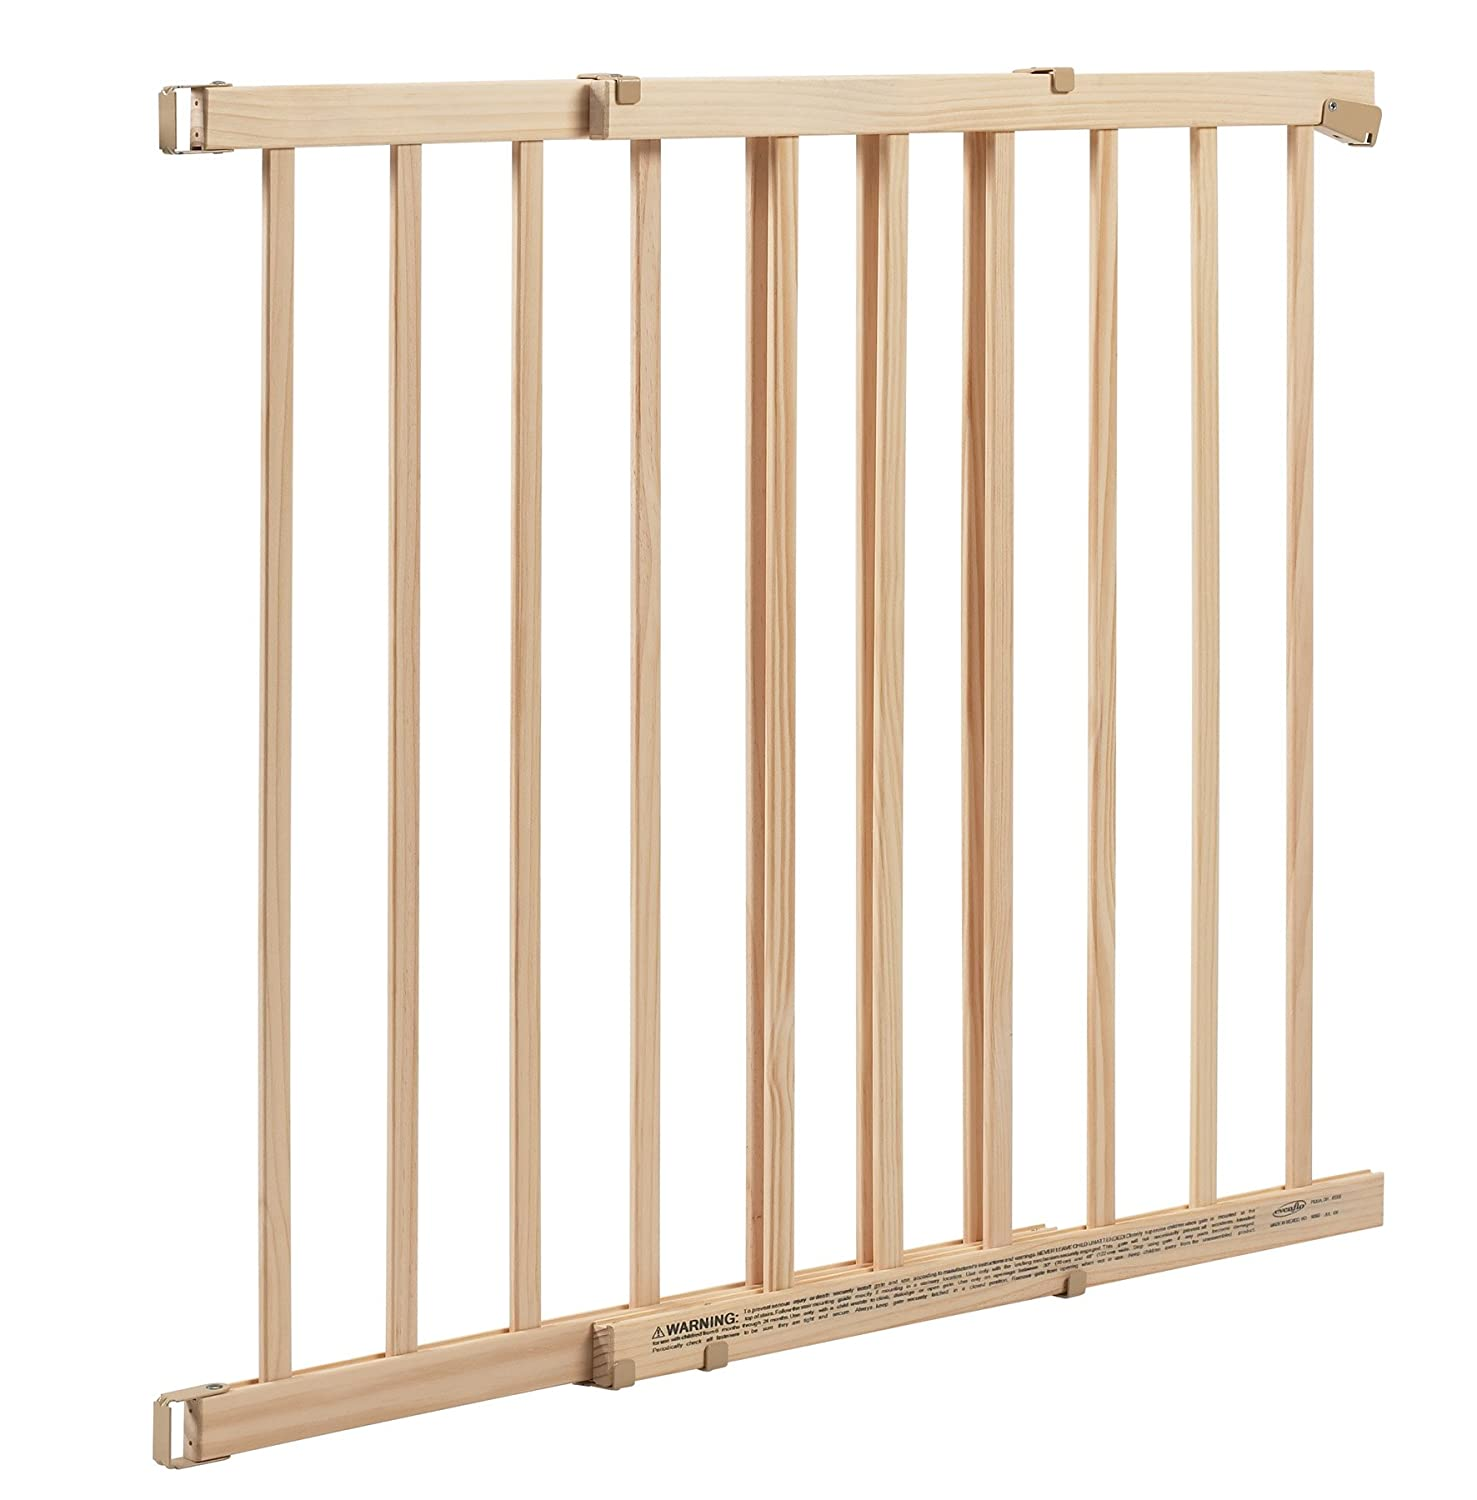 Amazon.com : Evenflo Top Of Stair Gate, Wood, Xtra Tall : Indoor Safety  Gates : Baby